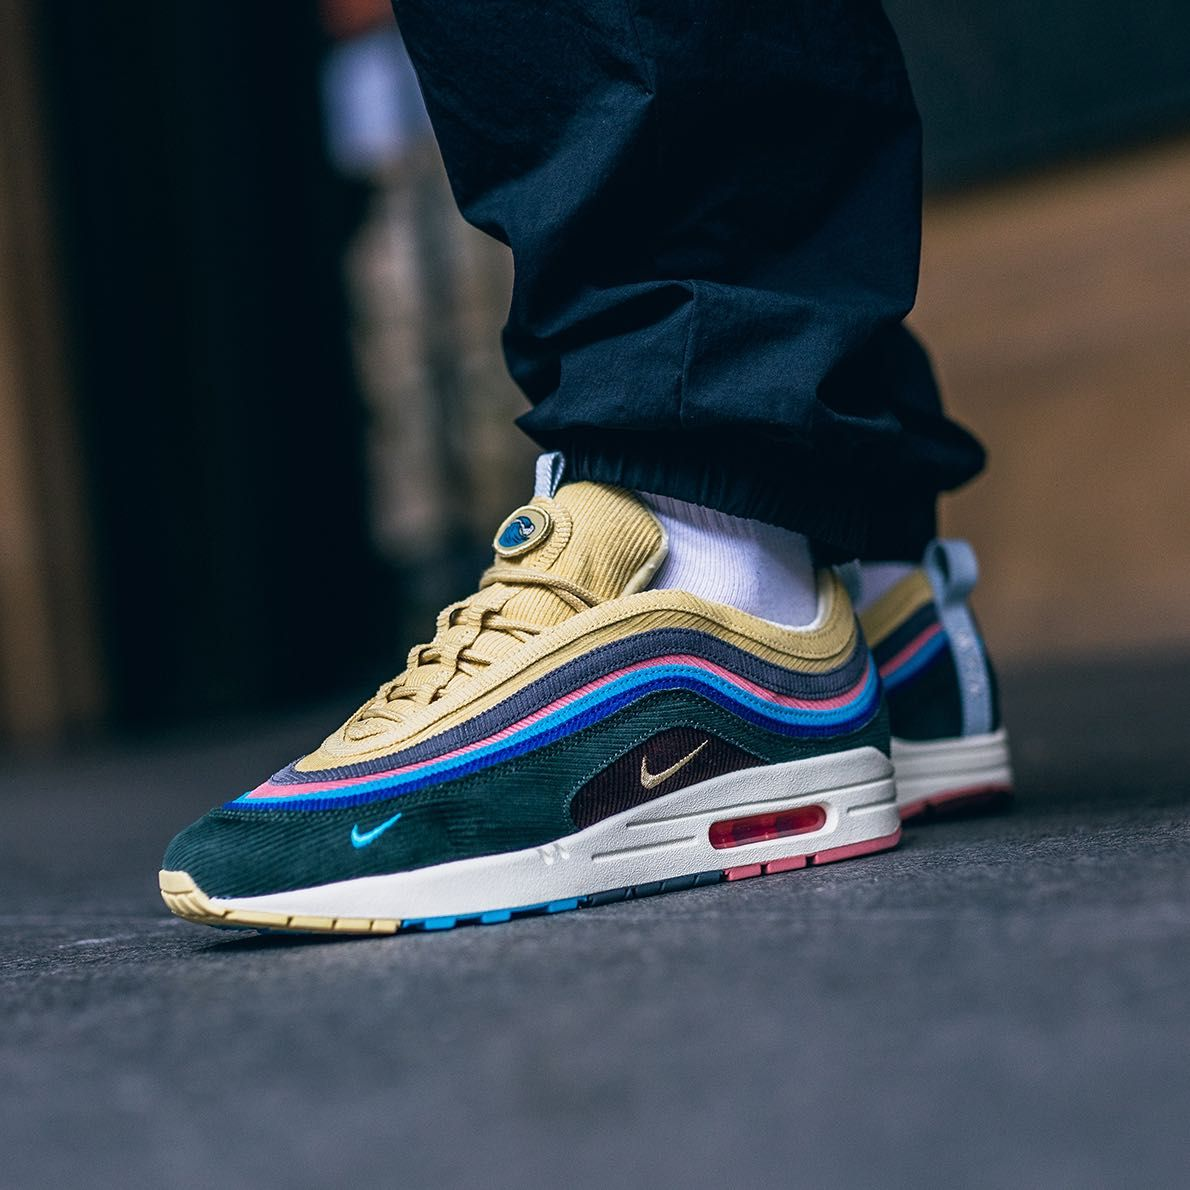 official photos 333ed b98d8 Release Date   March 24, 2018 Nike Air Max 1 97 « Sean Wotherspoon » Credit    43einhalb